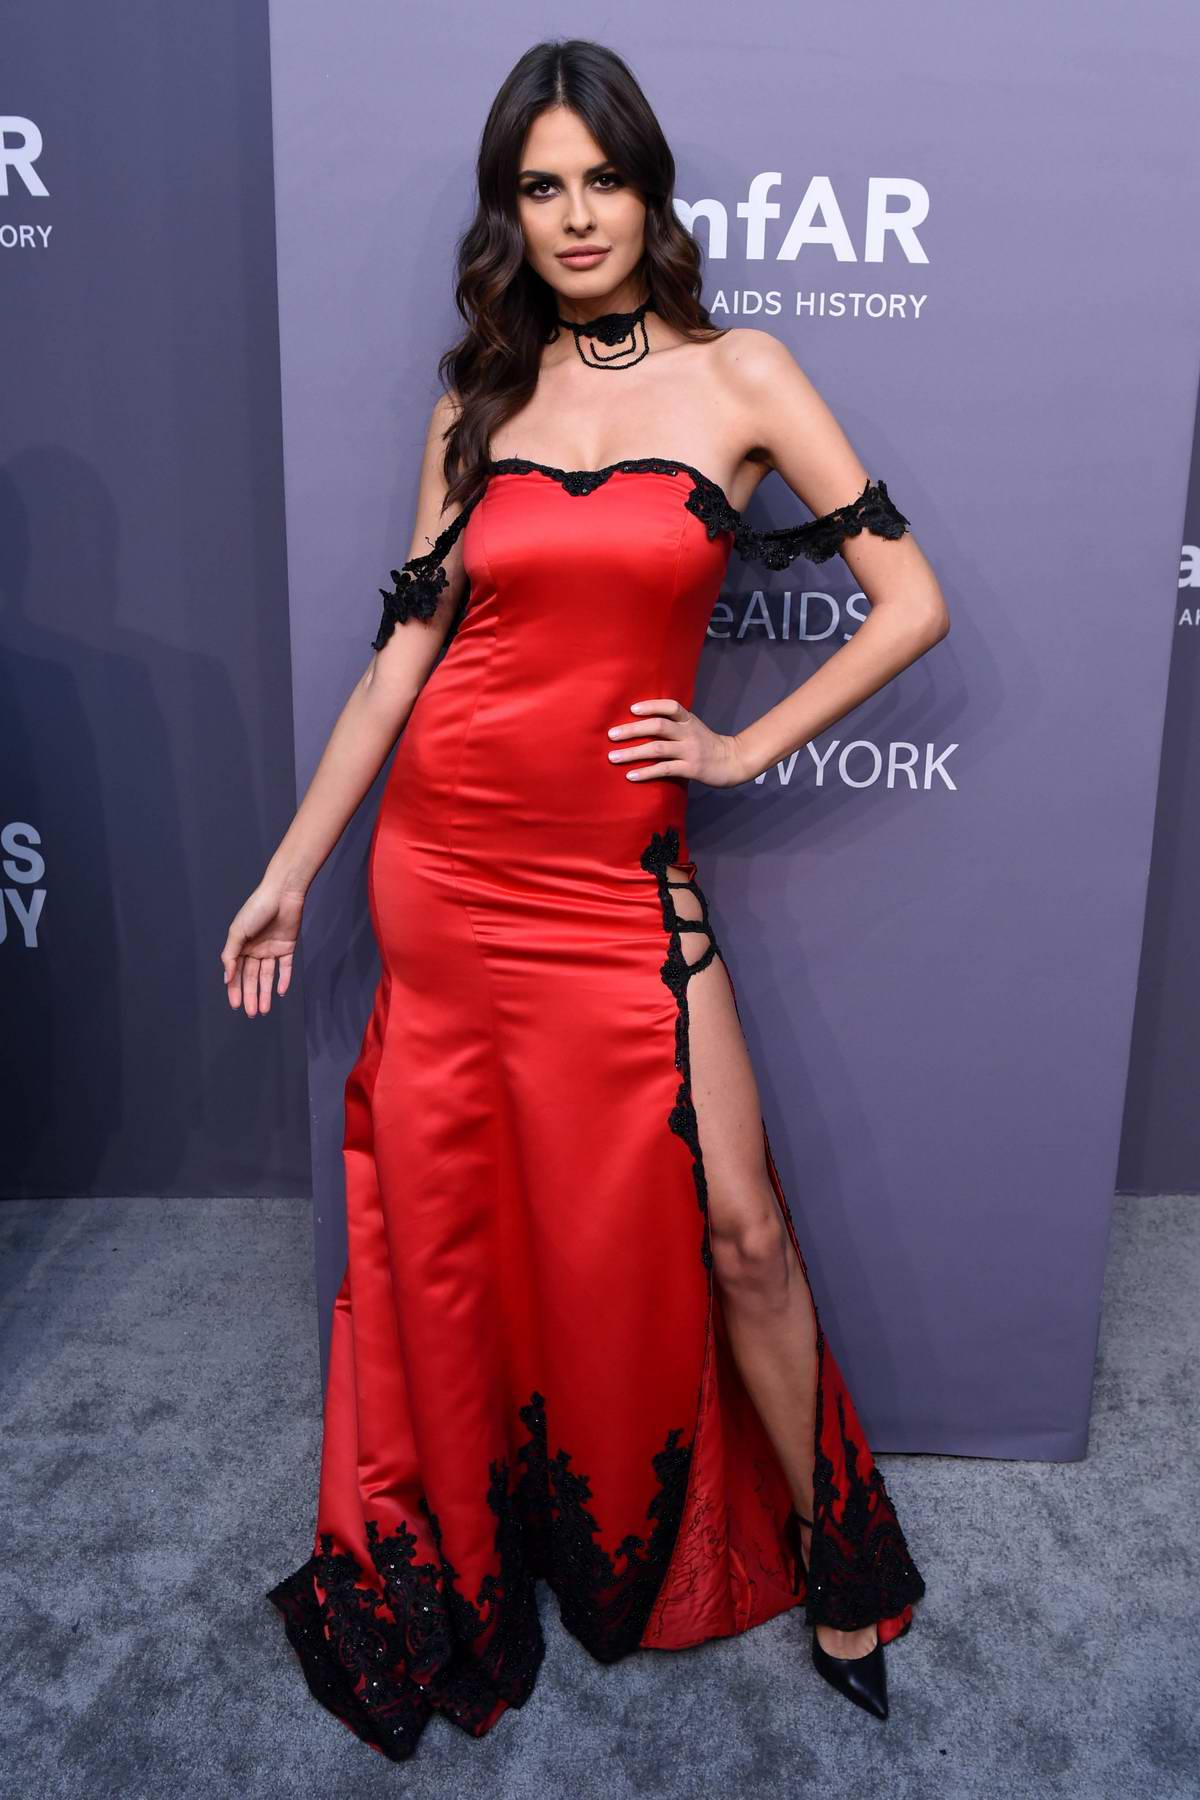 Bojana Krsmanovic attends amfAR New York Gala 2019 at Cipriani Wall Street in New York City